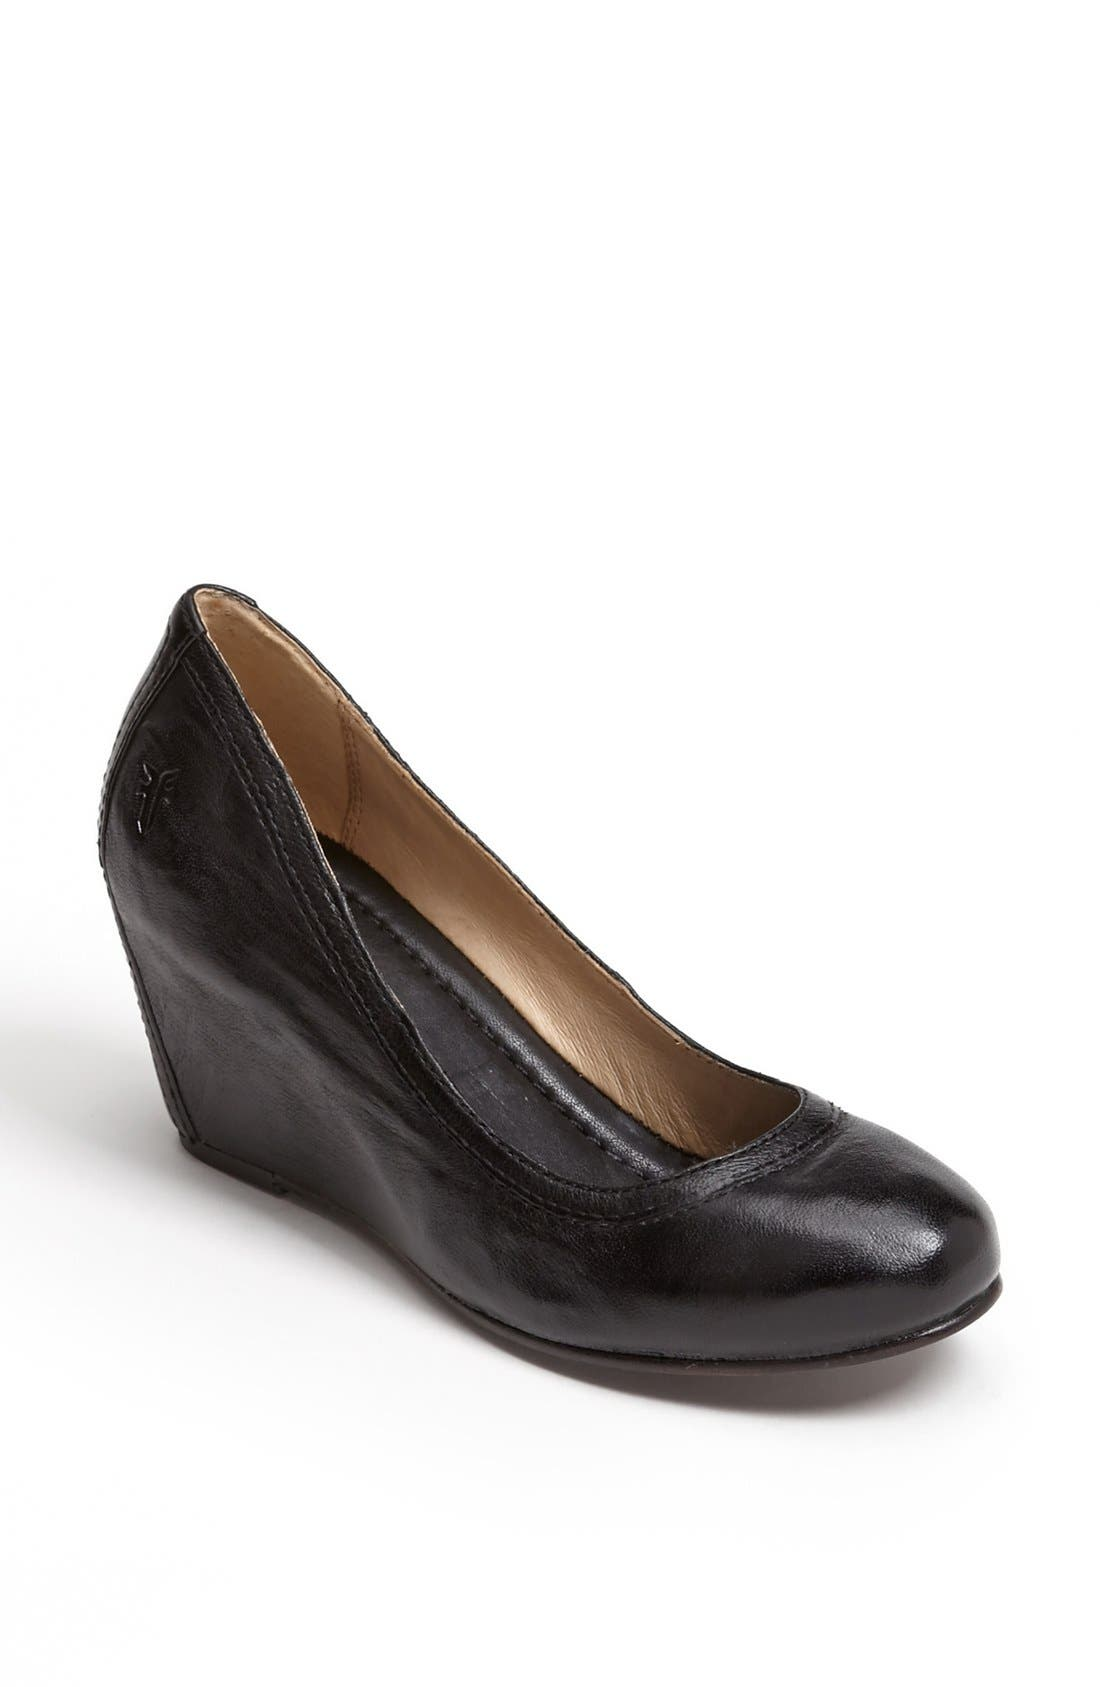 Alternate Image 1 Selected - Frye 'Carson' Wedge Pump